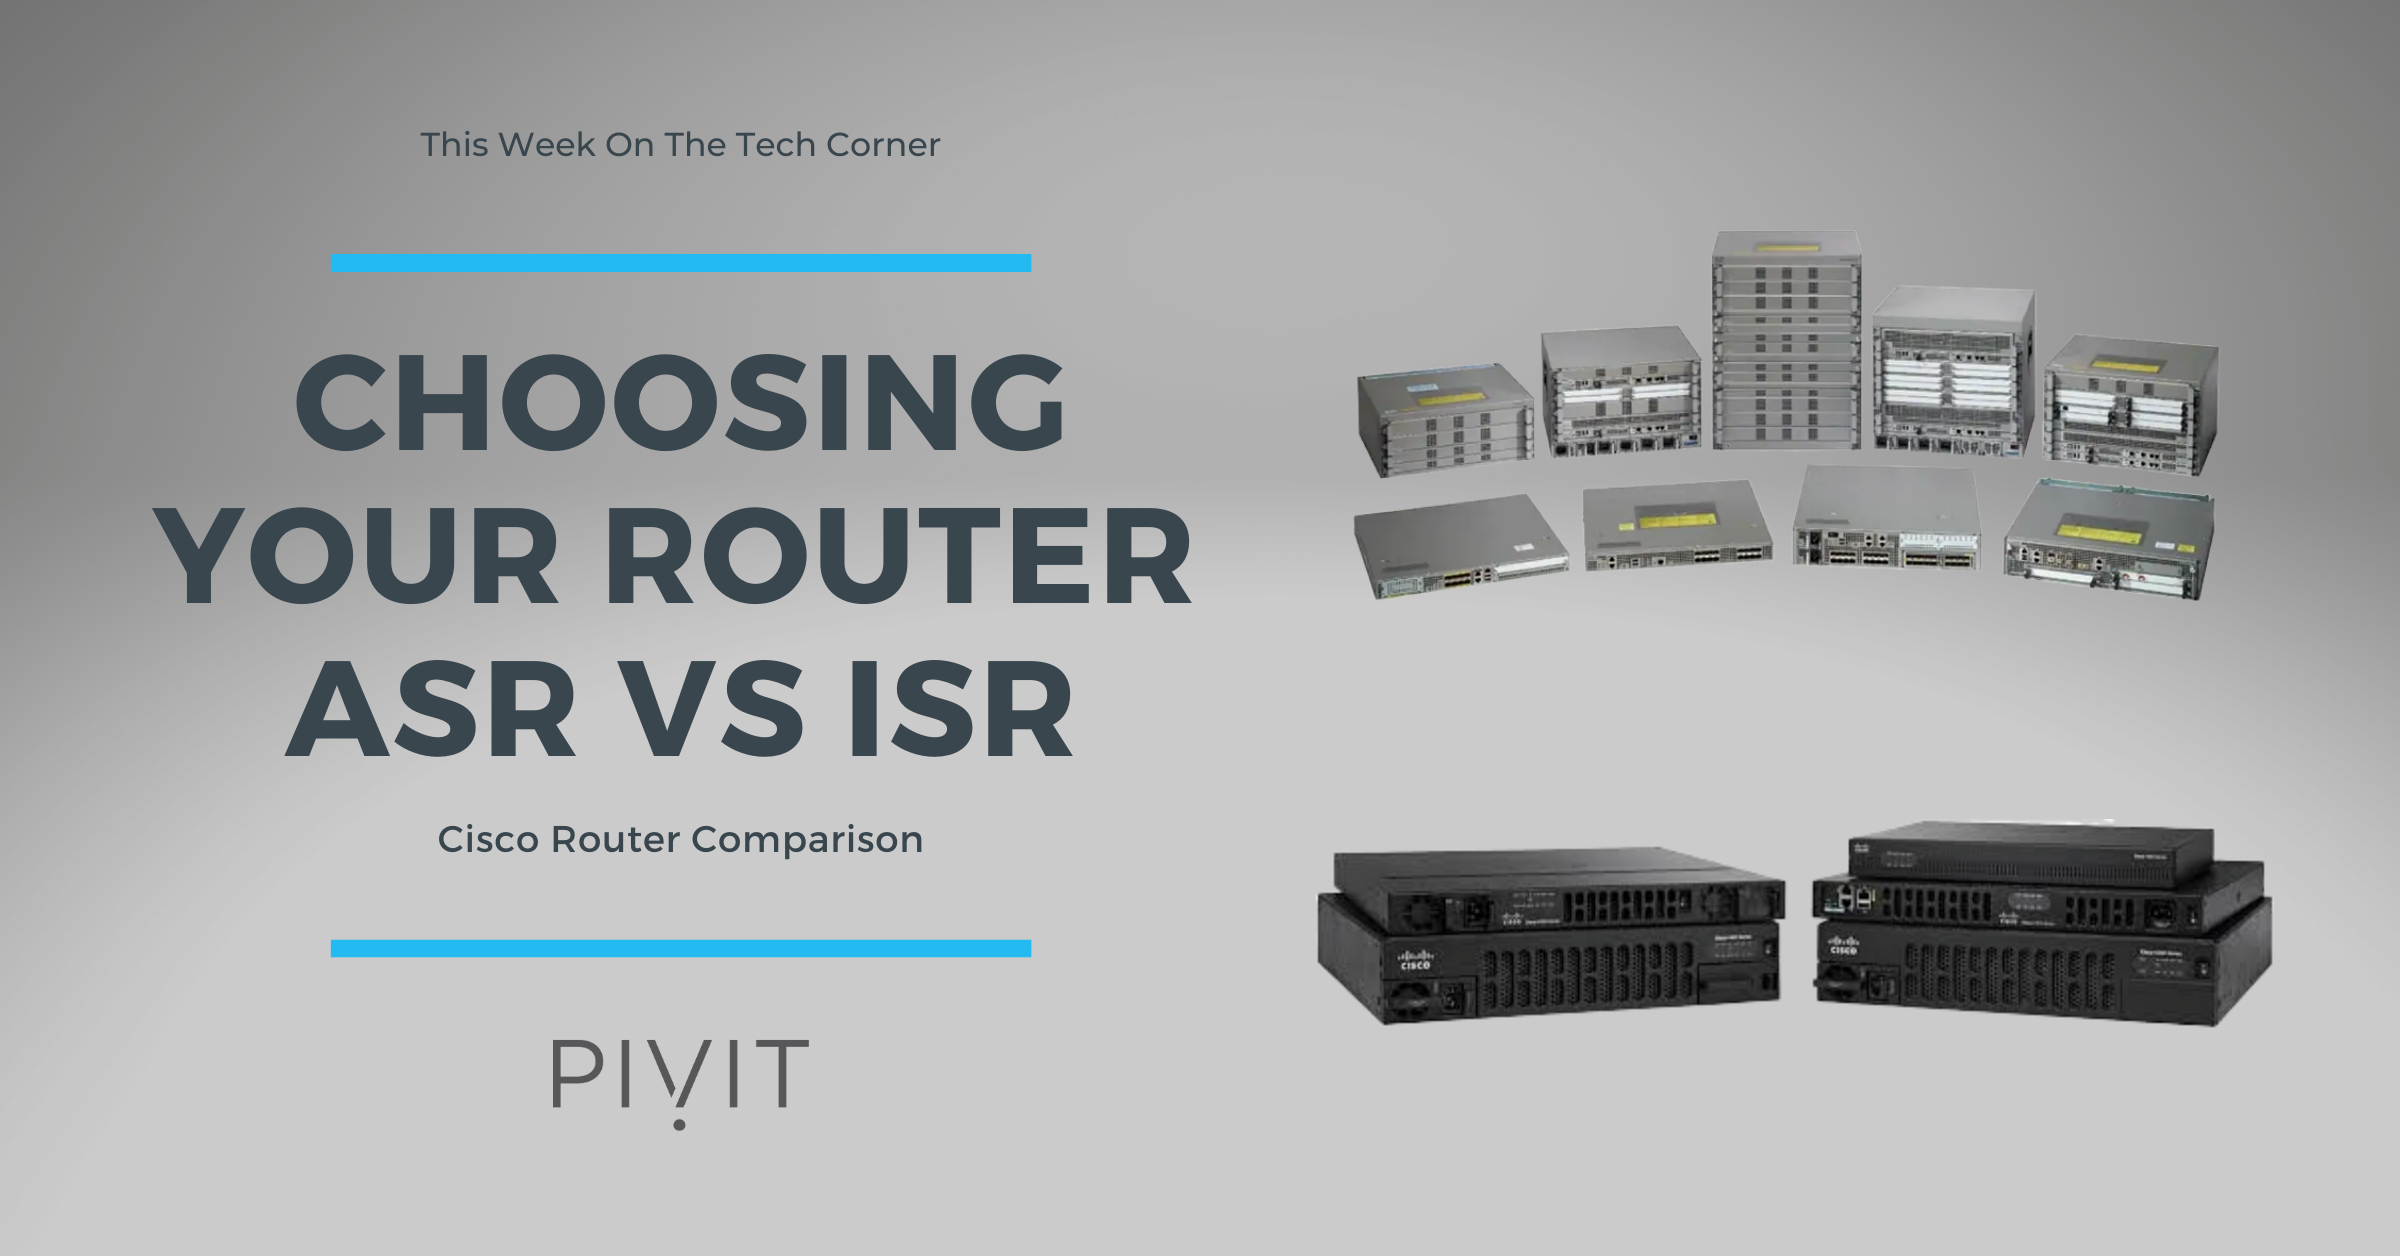 Choosing the Best Router for Your Network: Cisco's ASR or ISR Series